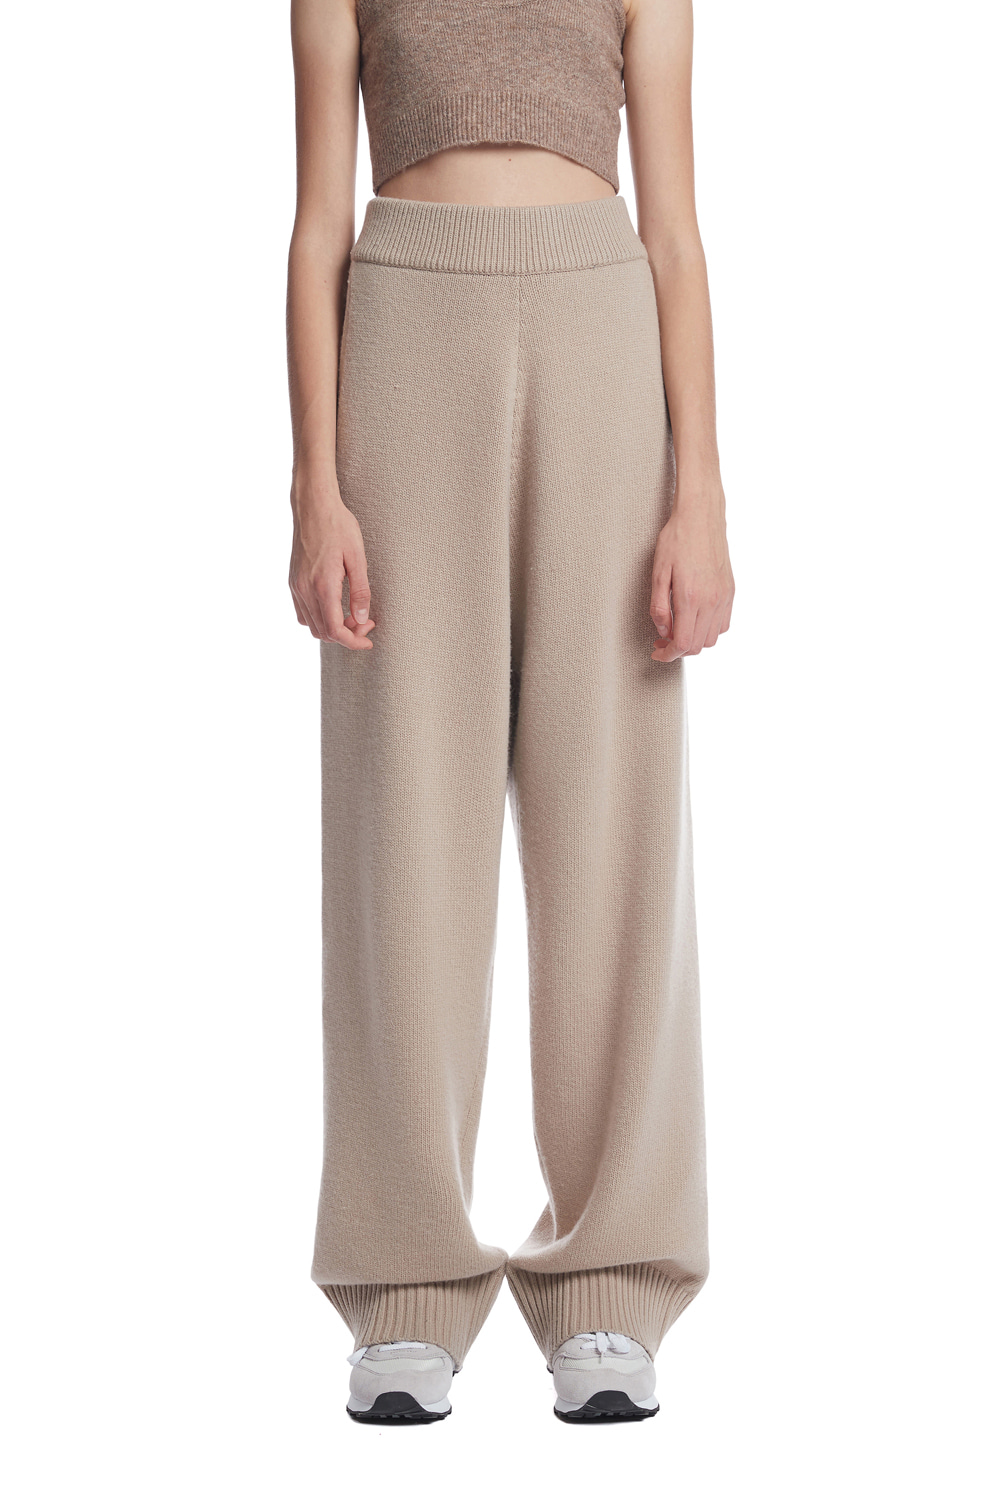 10월 15일 예약배송  Cashmere Lounge Pants